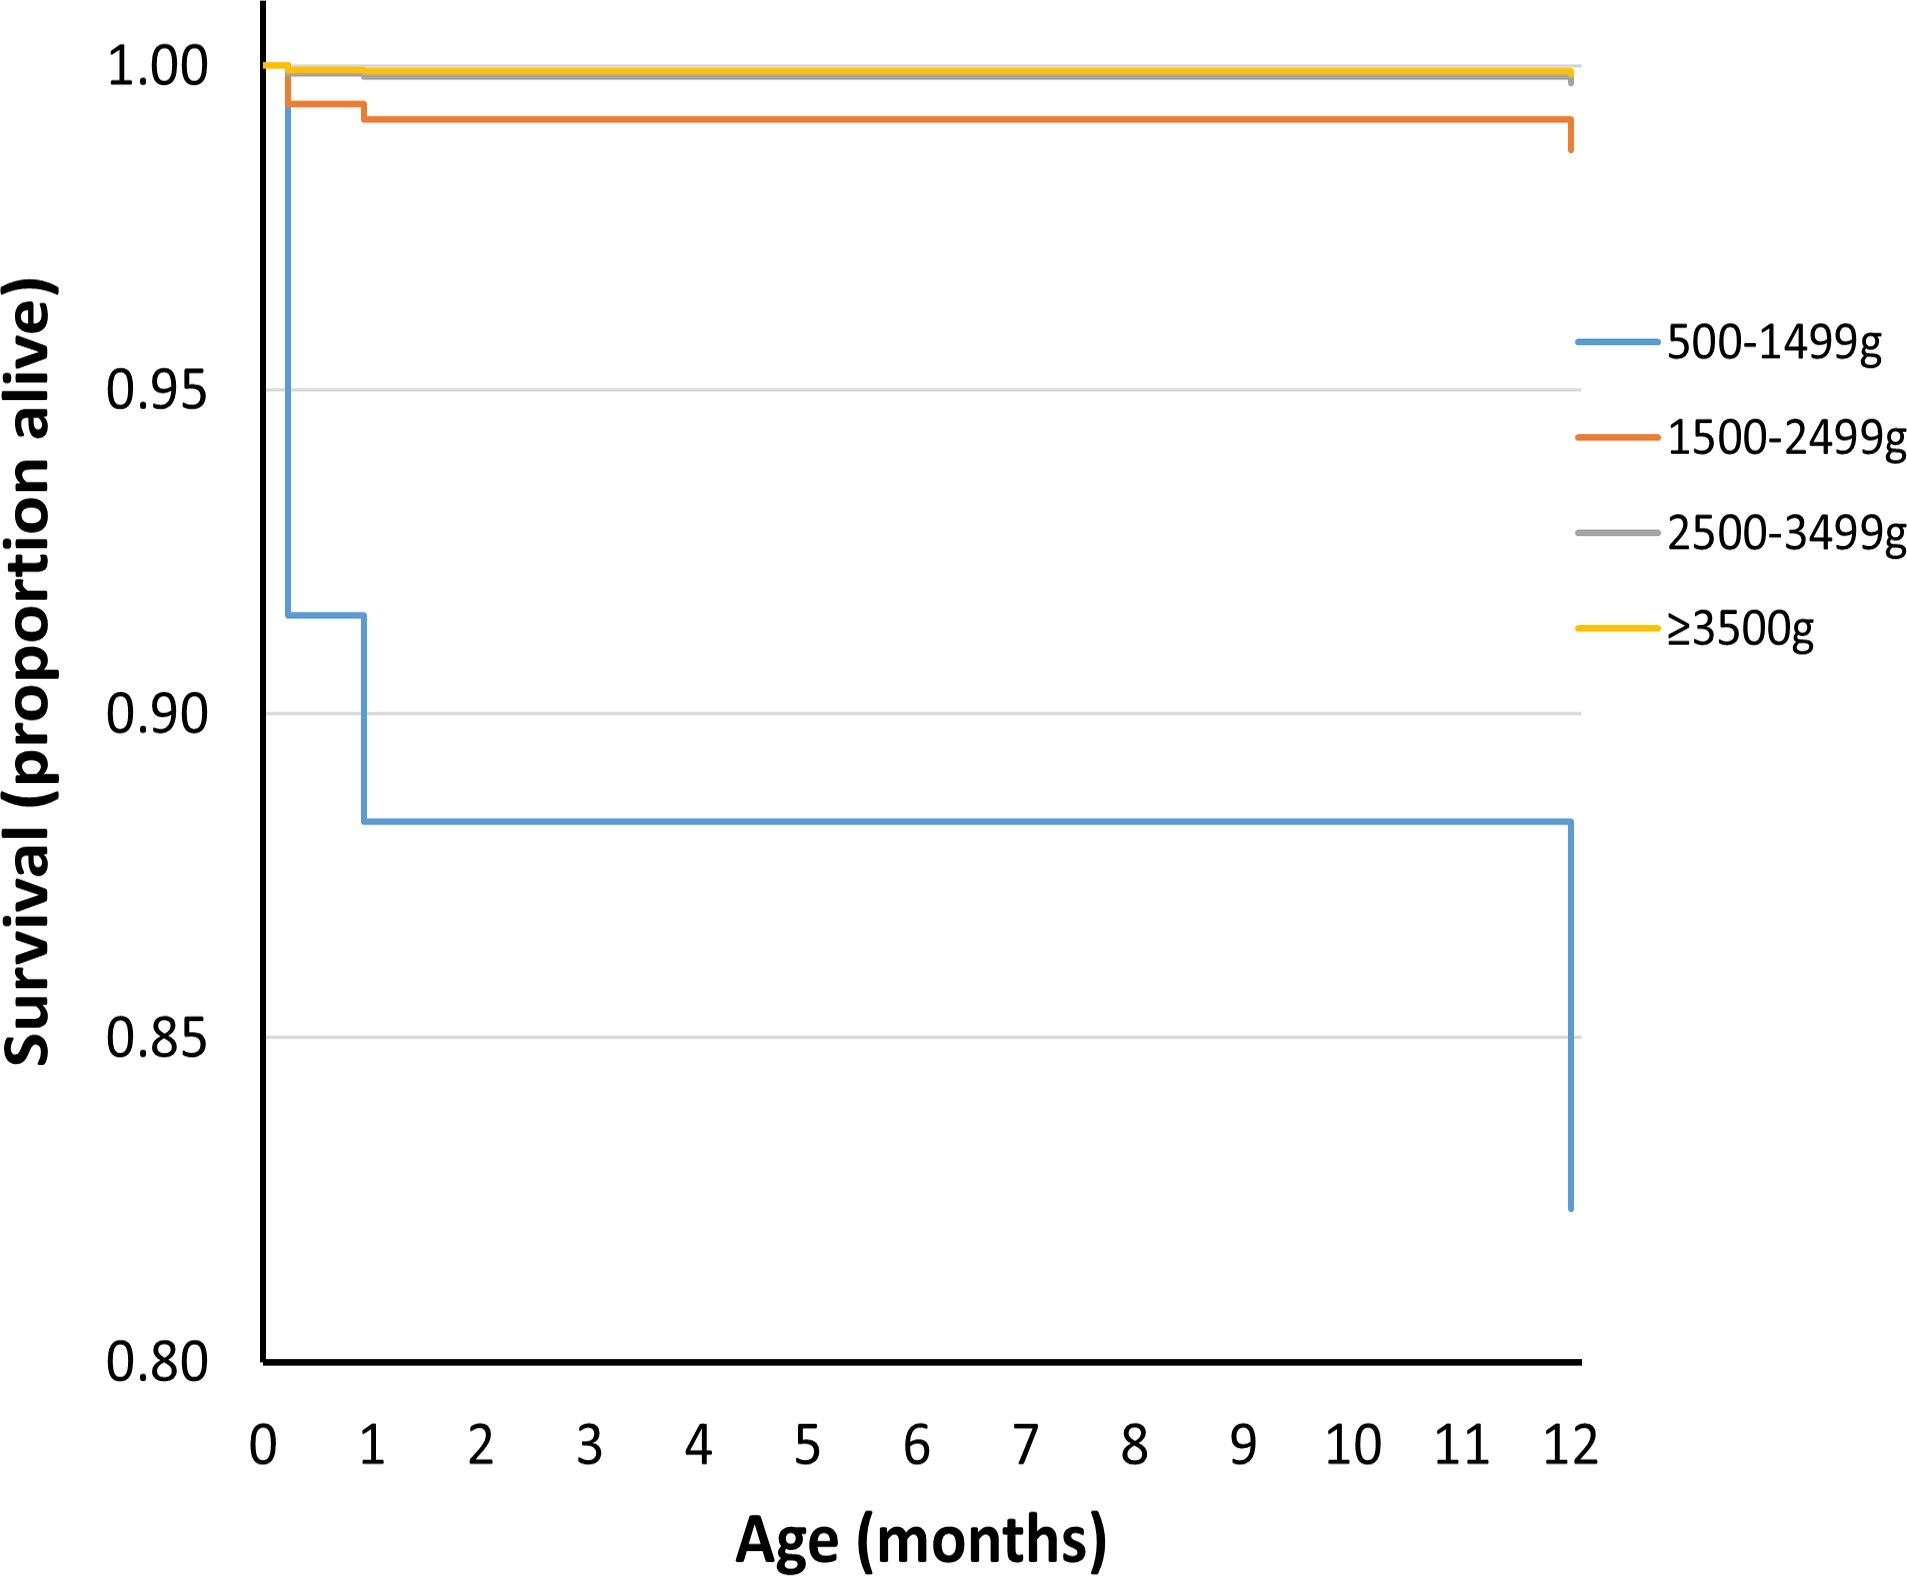 Survival curve by birthweight group for deaths up to 1 y of age for UK population between 1993 and 2011.